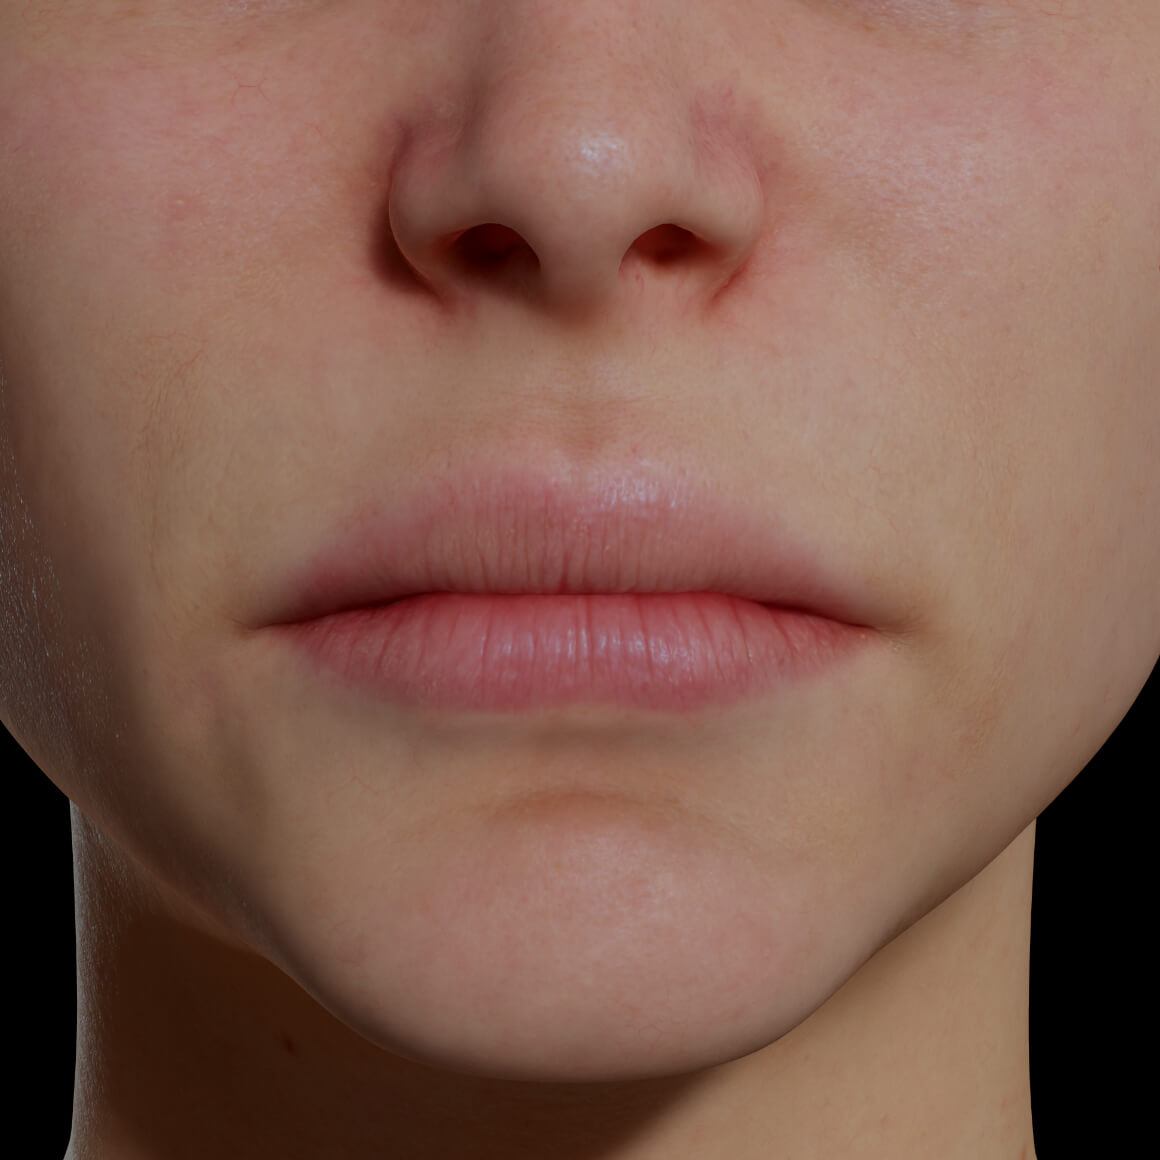 Female patient at Clinique Chloé facing front after dermal filler injections to increase lip volume